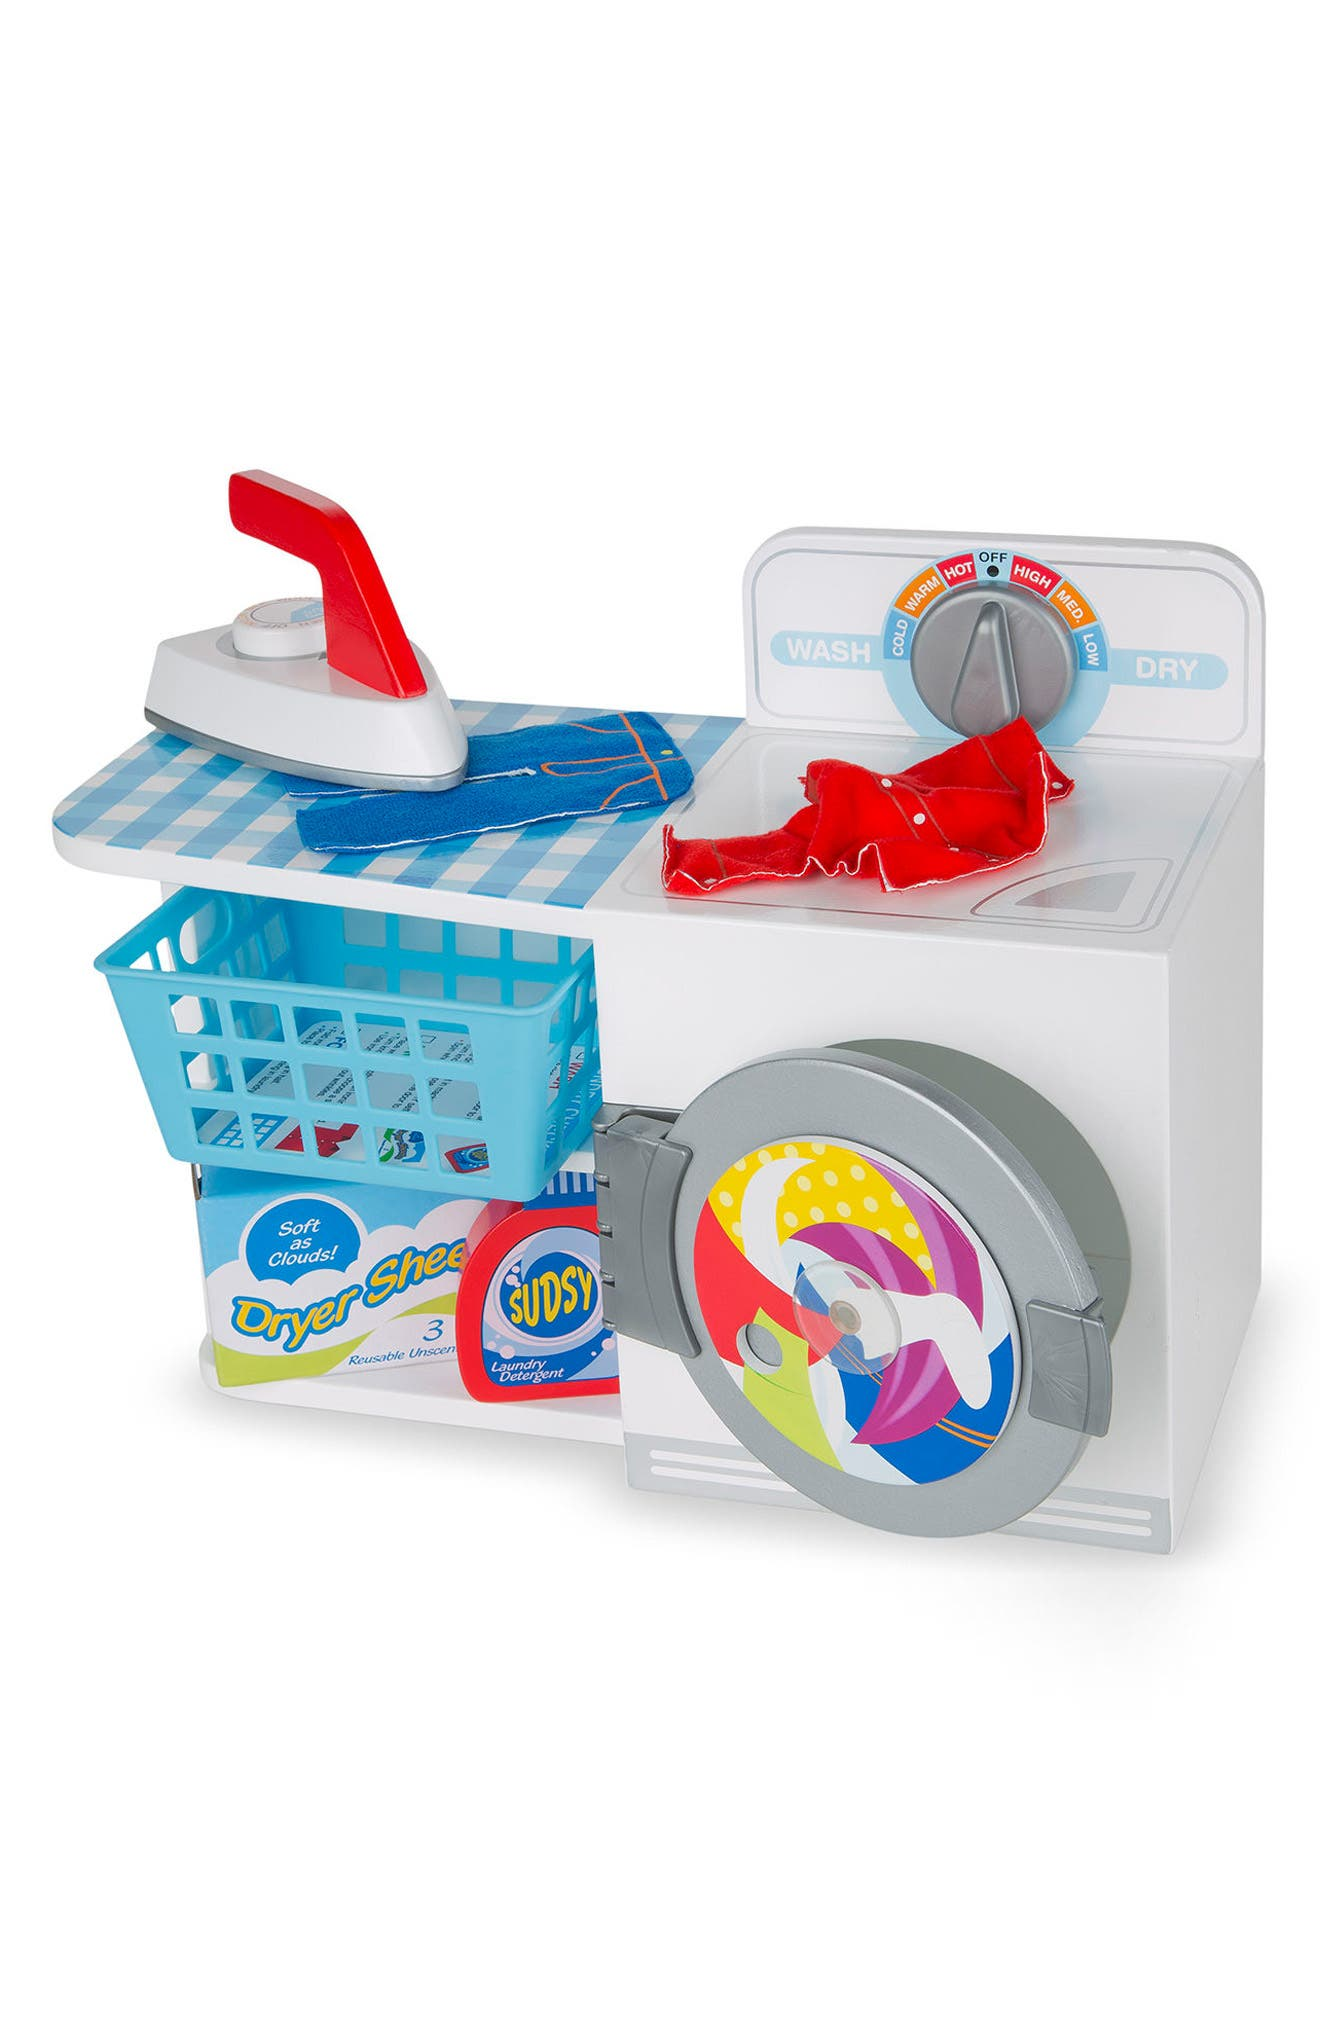 Let's Play House! Wash, Dry & Iron 8-Piece Play Set,                         Main,                         color, 100